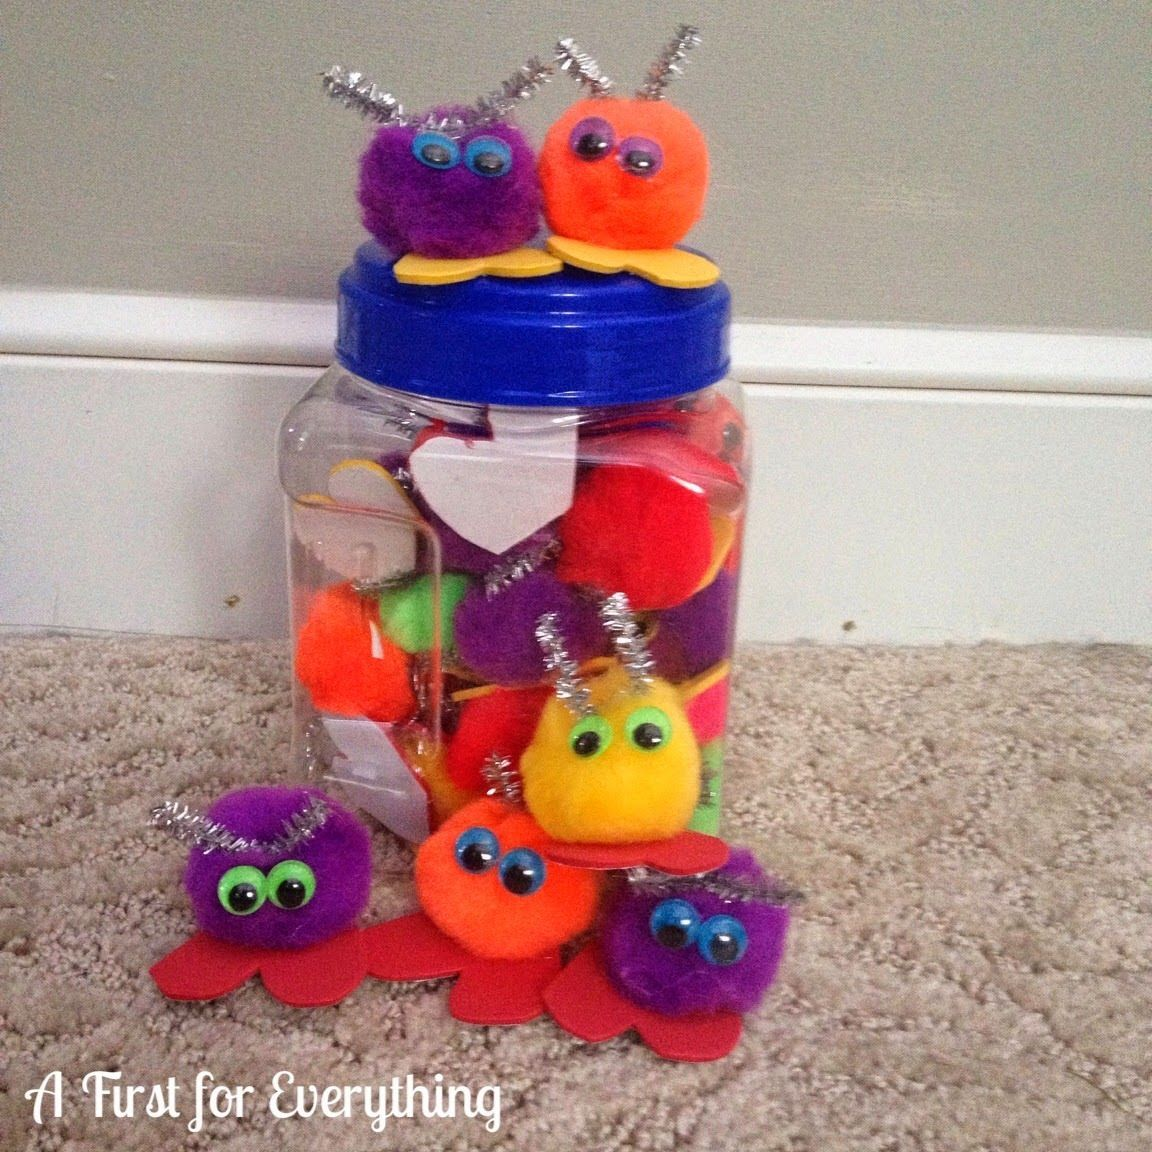 Quiet critters to give to students who are working quietly. #quietcritters Quiet critters to give to students who are working quietly. #quietcritters